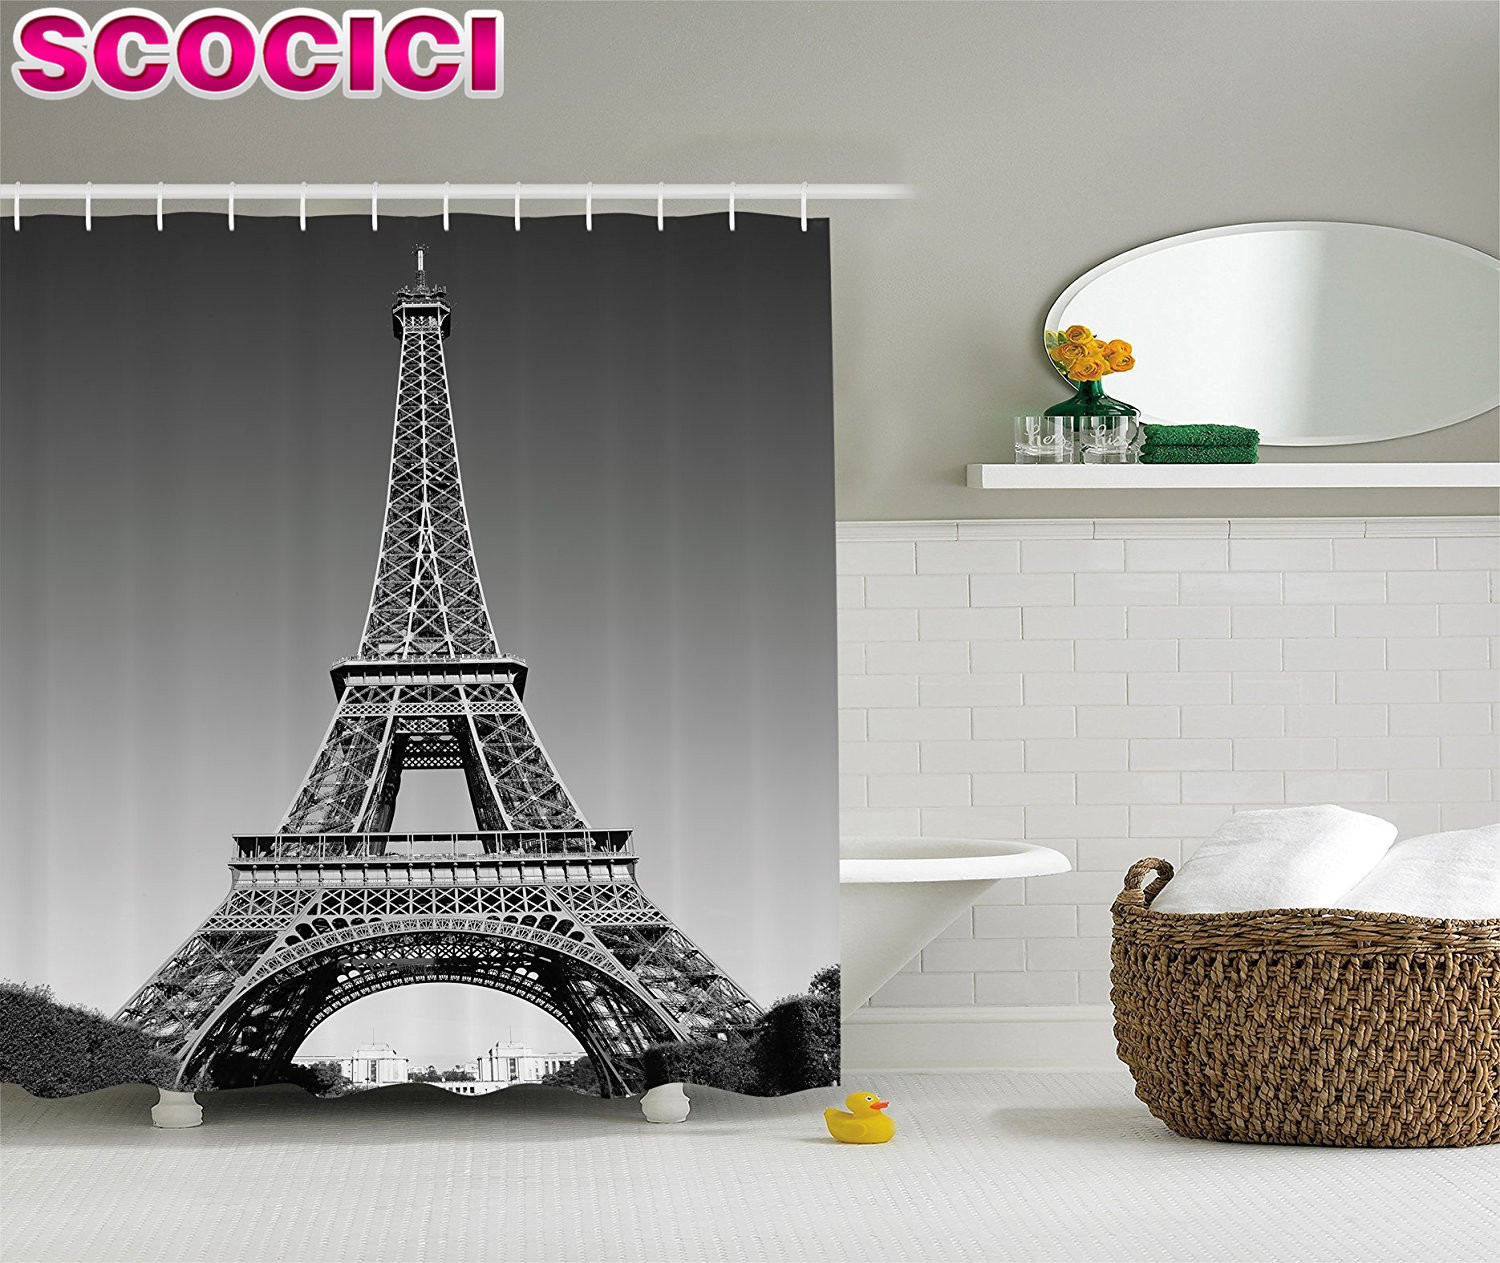 Paris Living Room Decor Compare Prices On Paris Themes Decorations Online Shopping Buy